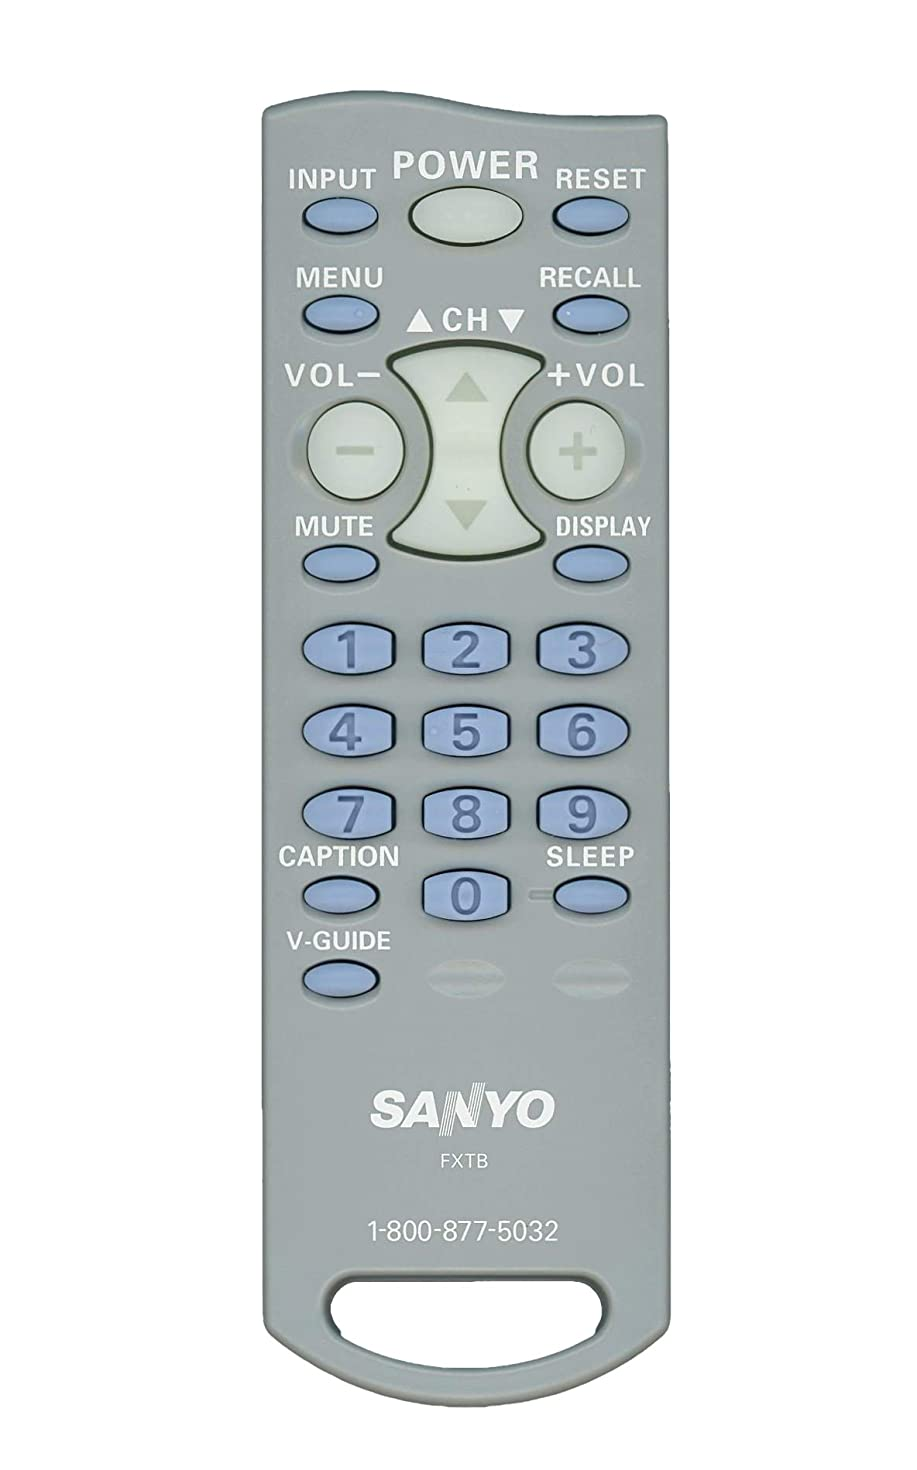 Original Sanyo FXTB LCD TV Remote Control for Models AVM2751, AVM2751S, CLT-1554, CLT2054, DS19310, SLT1554